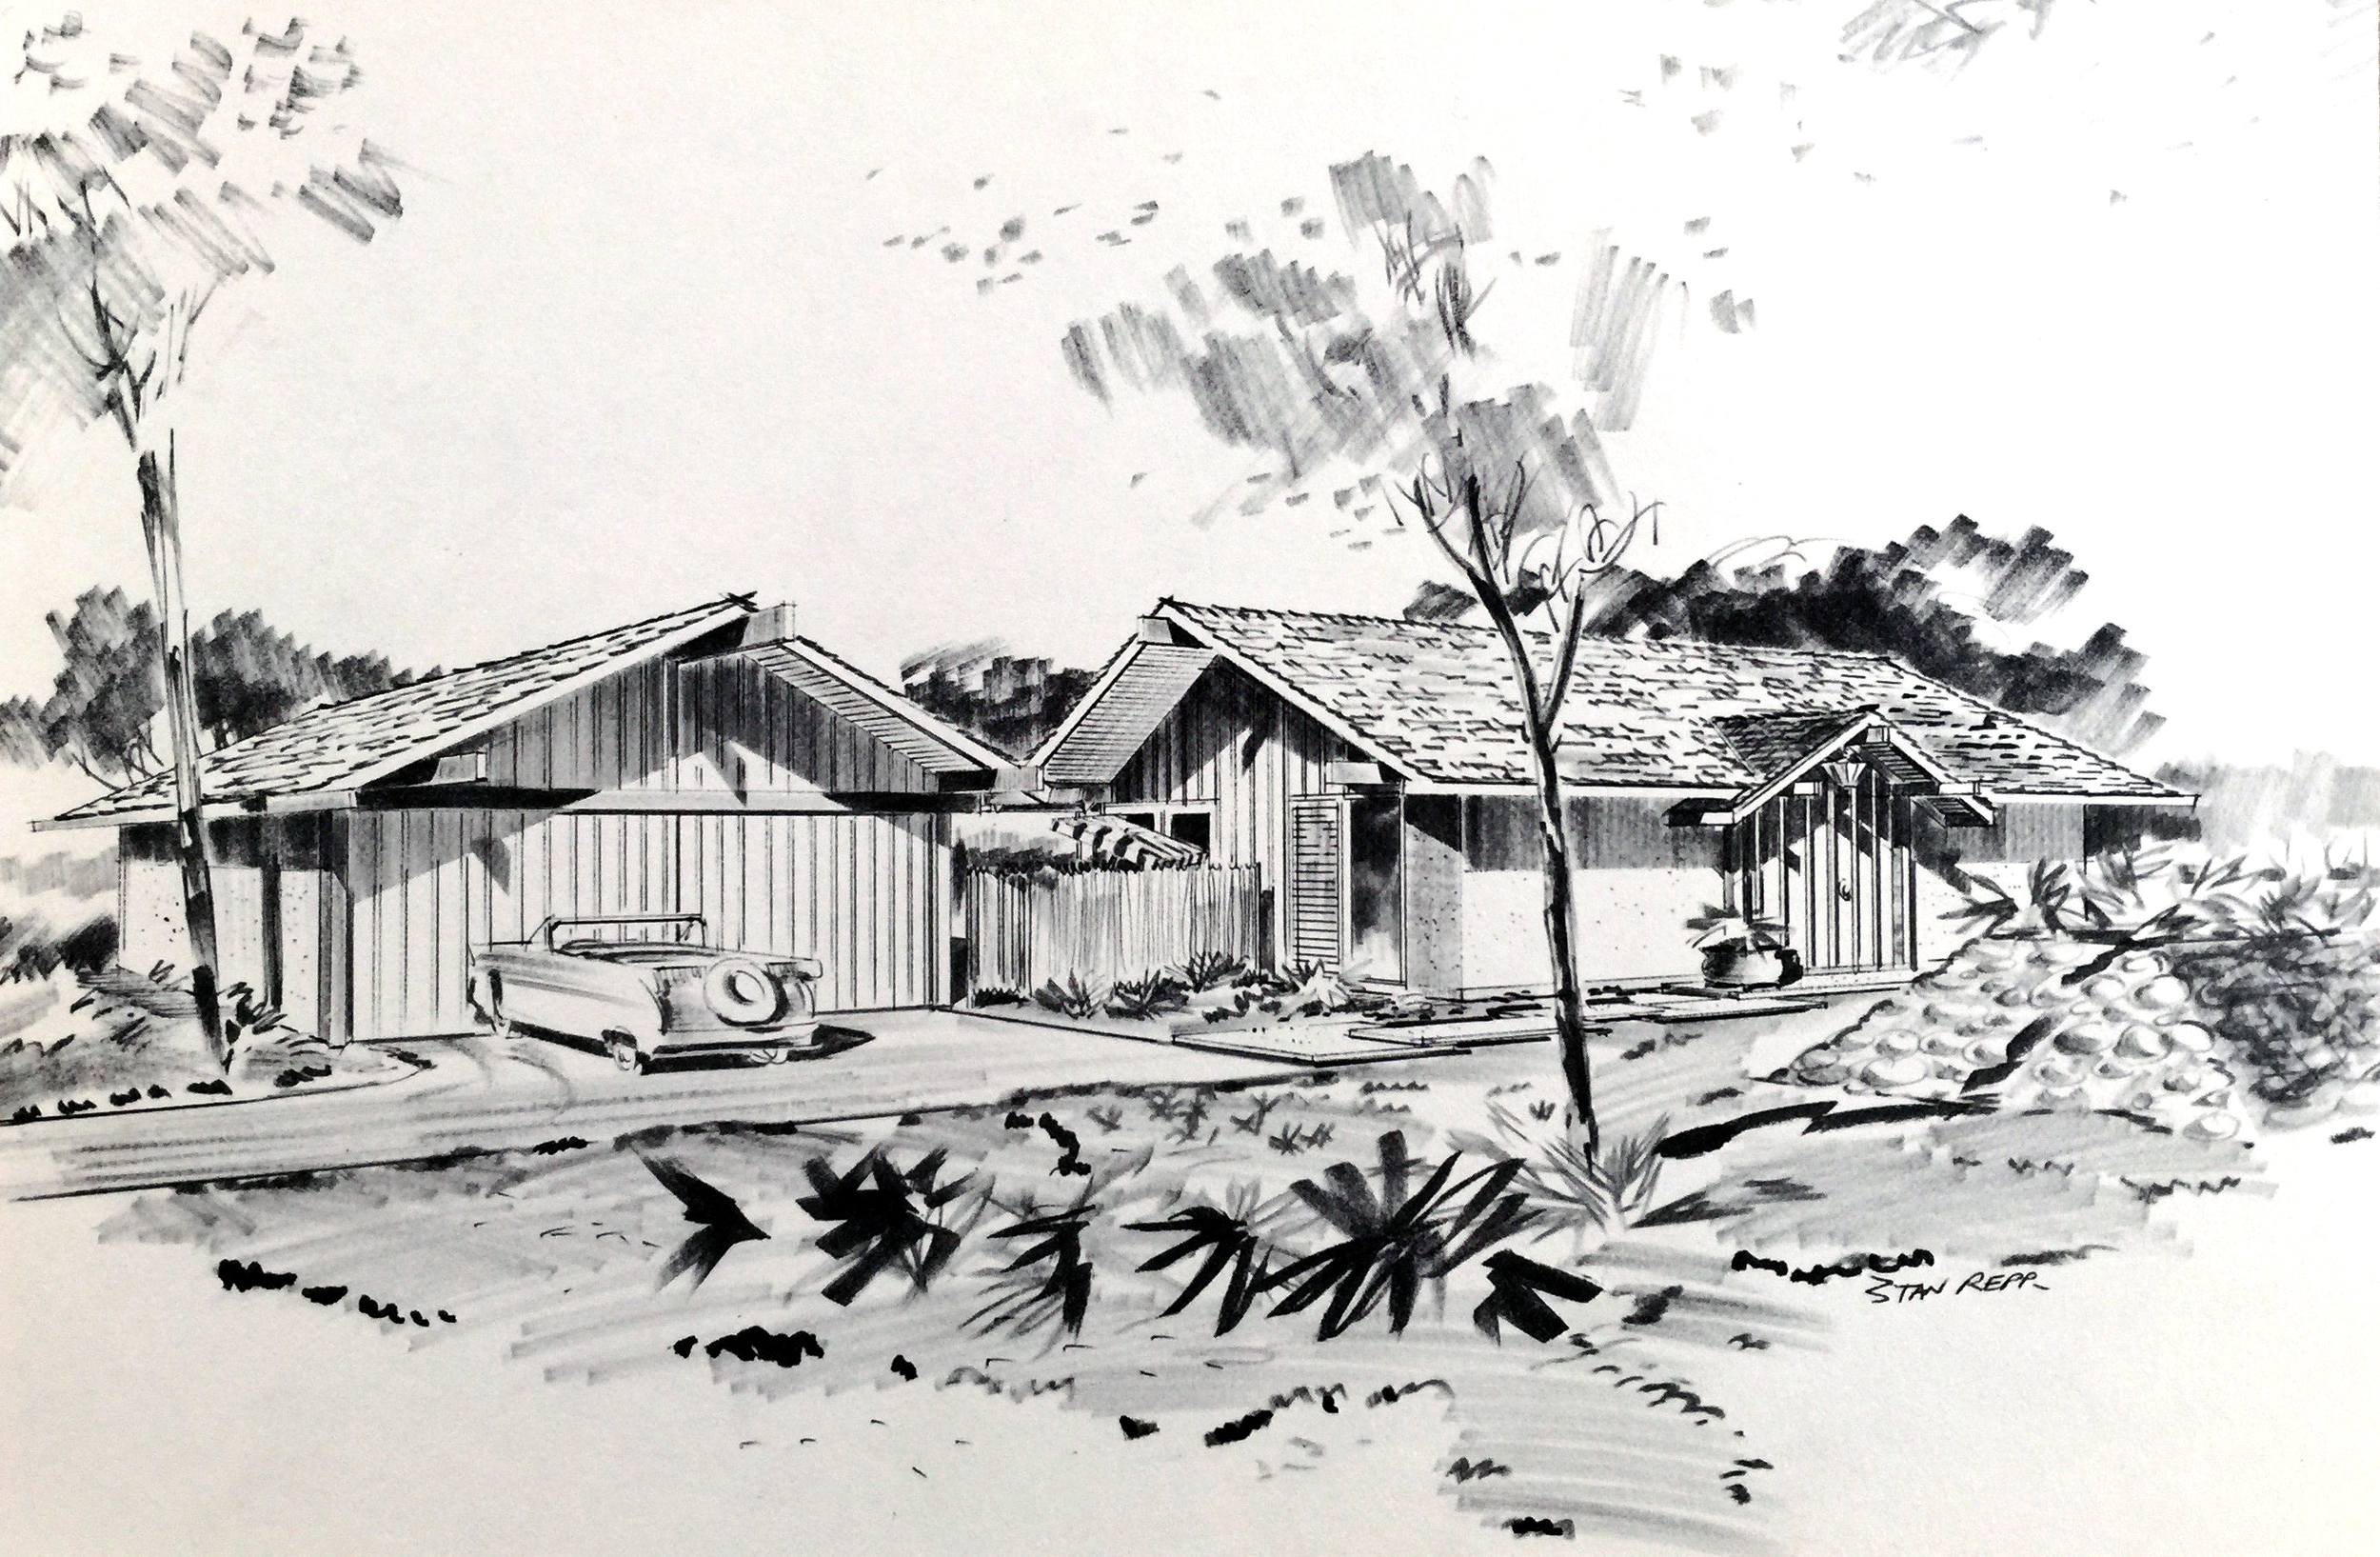 Smith and Williams, Architects and Engineers. House Design, California City. 1961.Architecture and Design Collection, University Art Museum, UCSB.